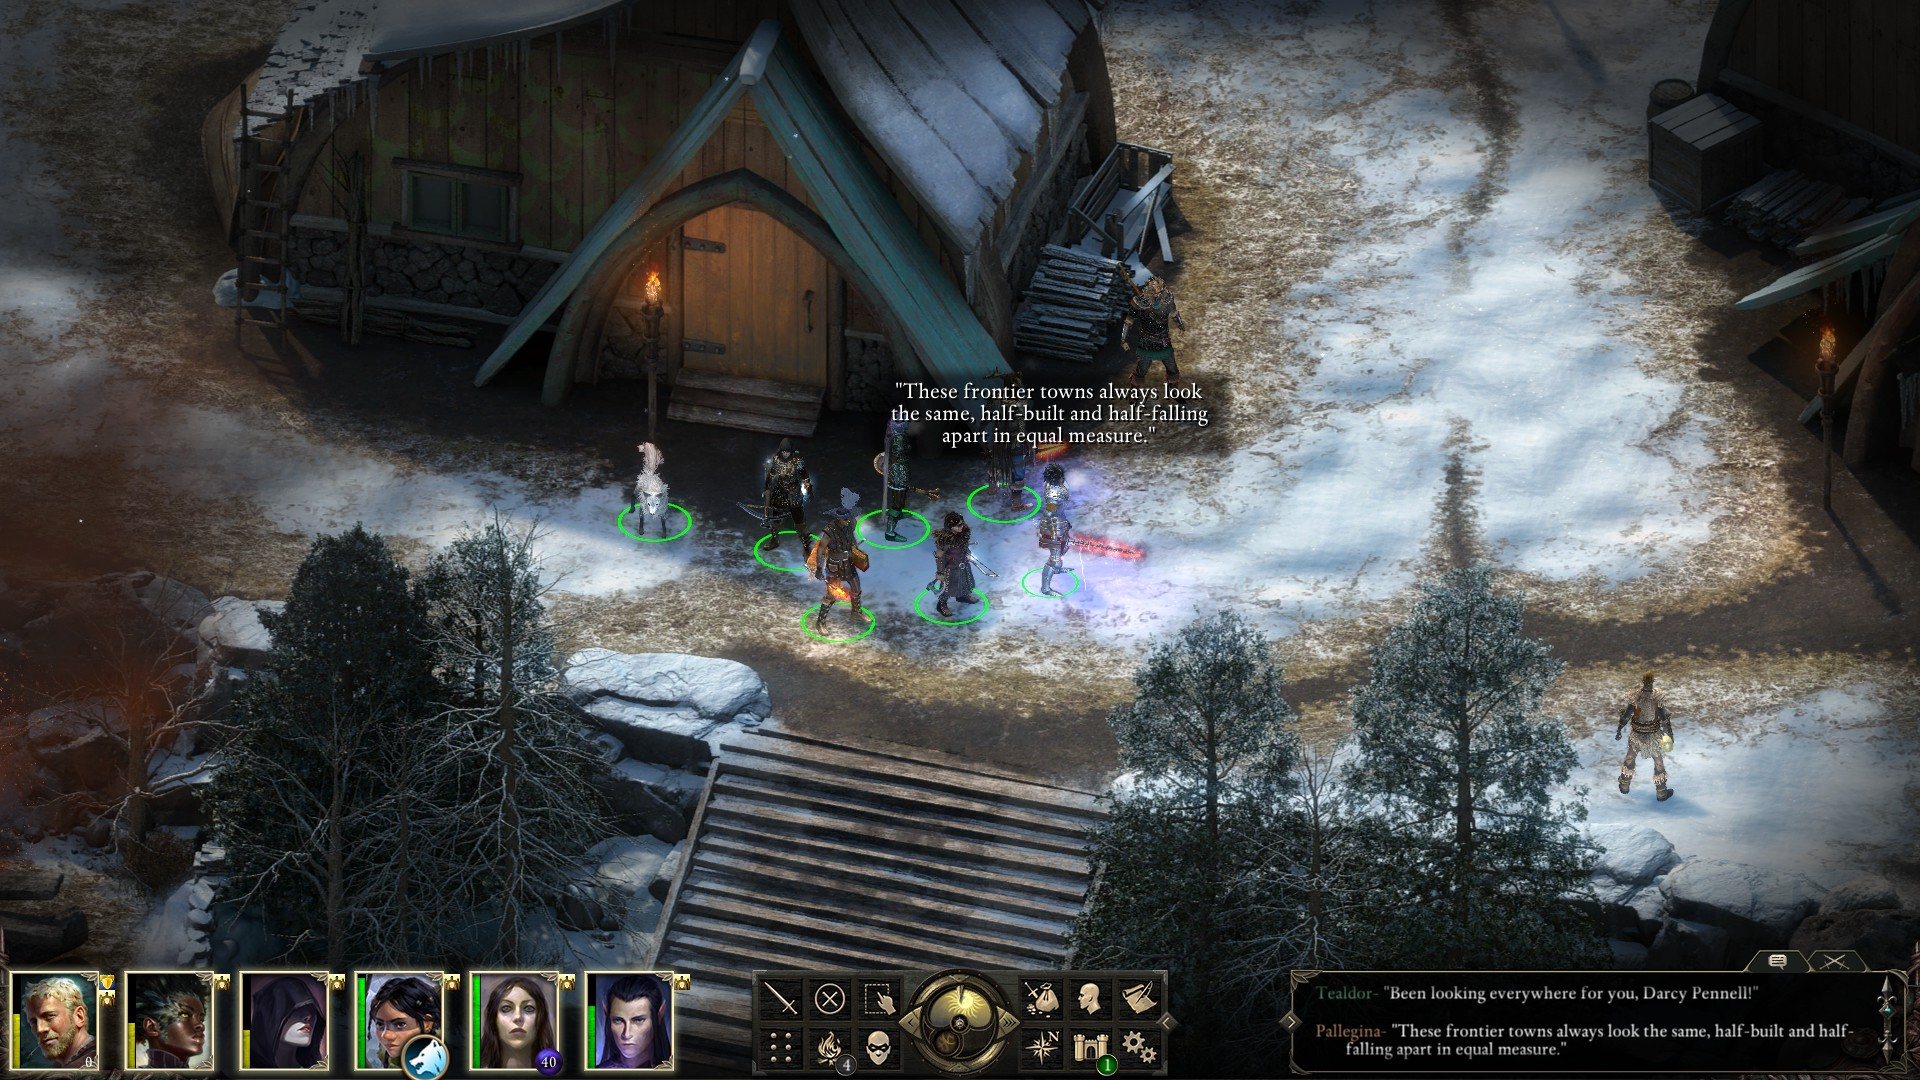 Pillars Of Eternity Wallpaper: Pillars Of Eternity: The White March 2 HD Desktop